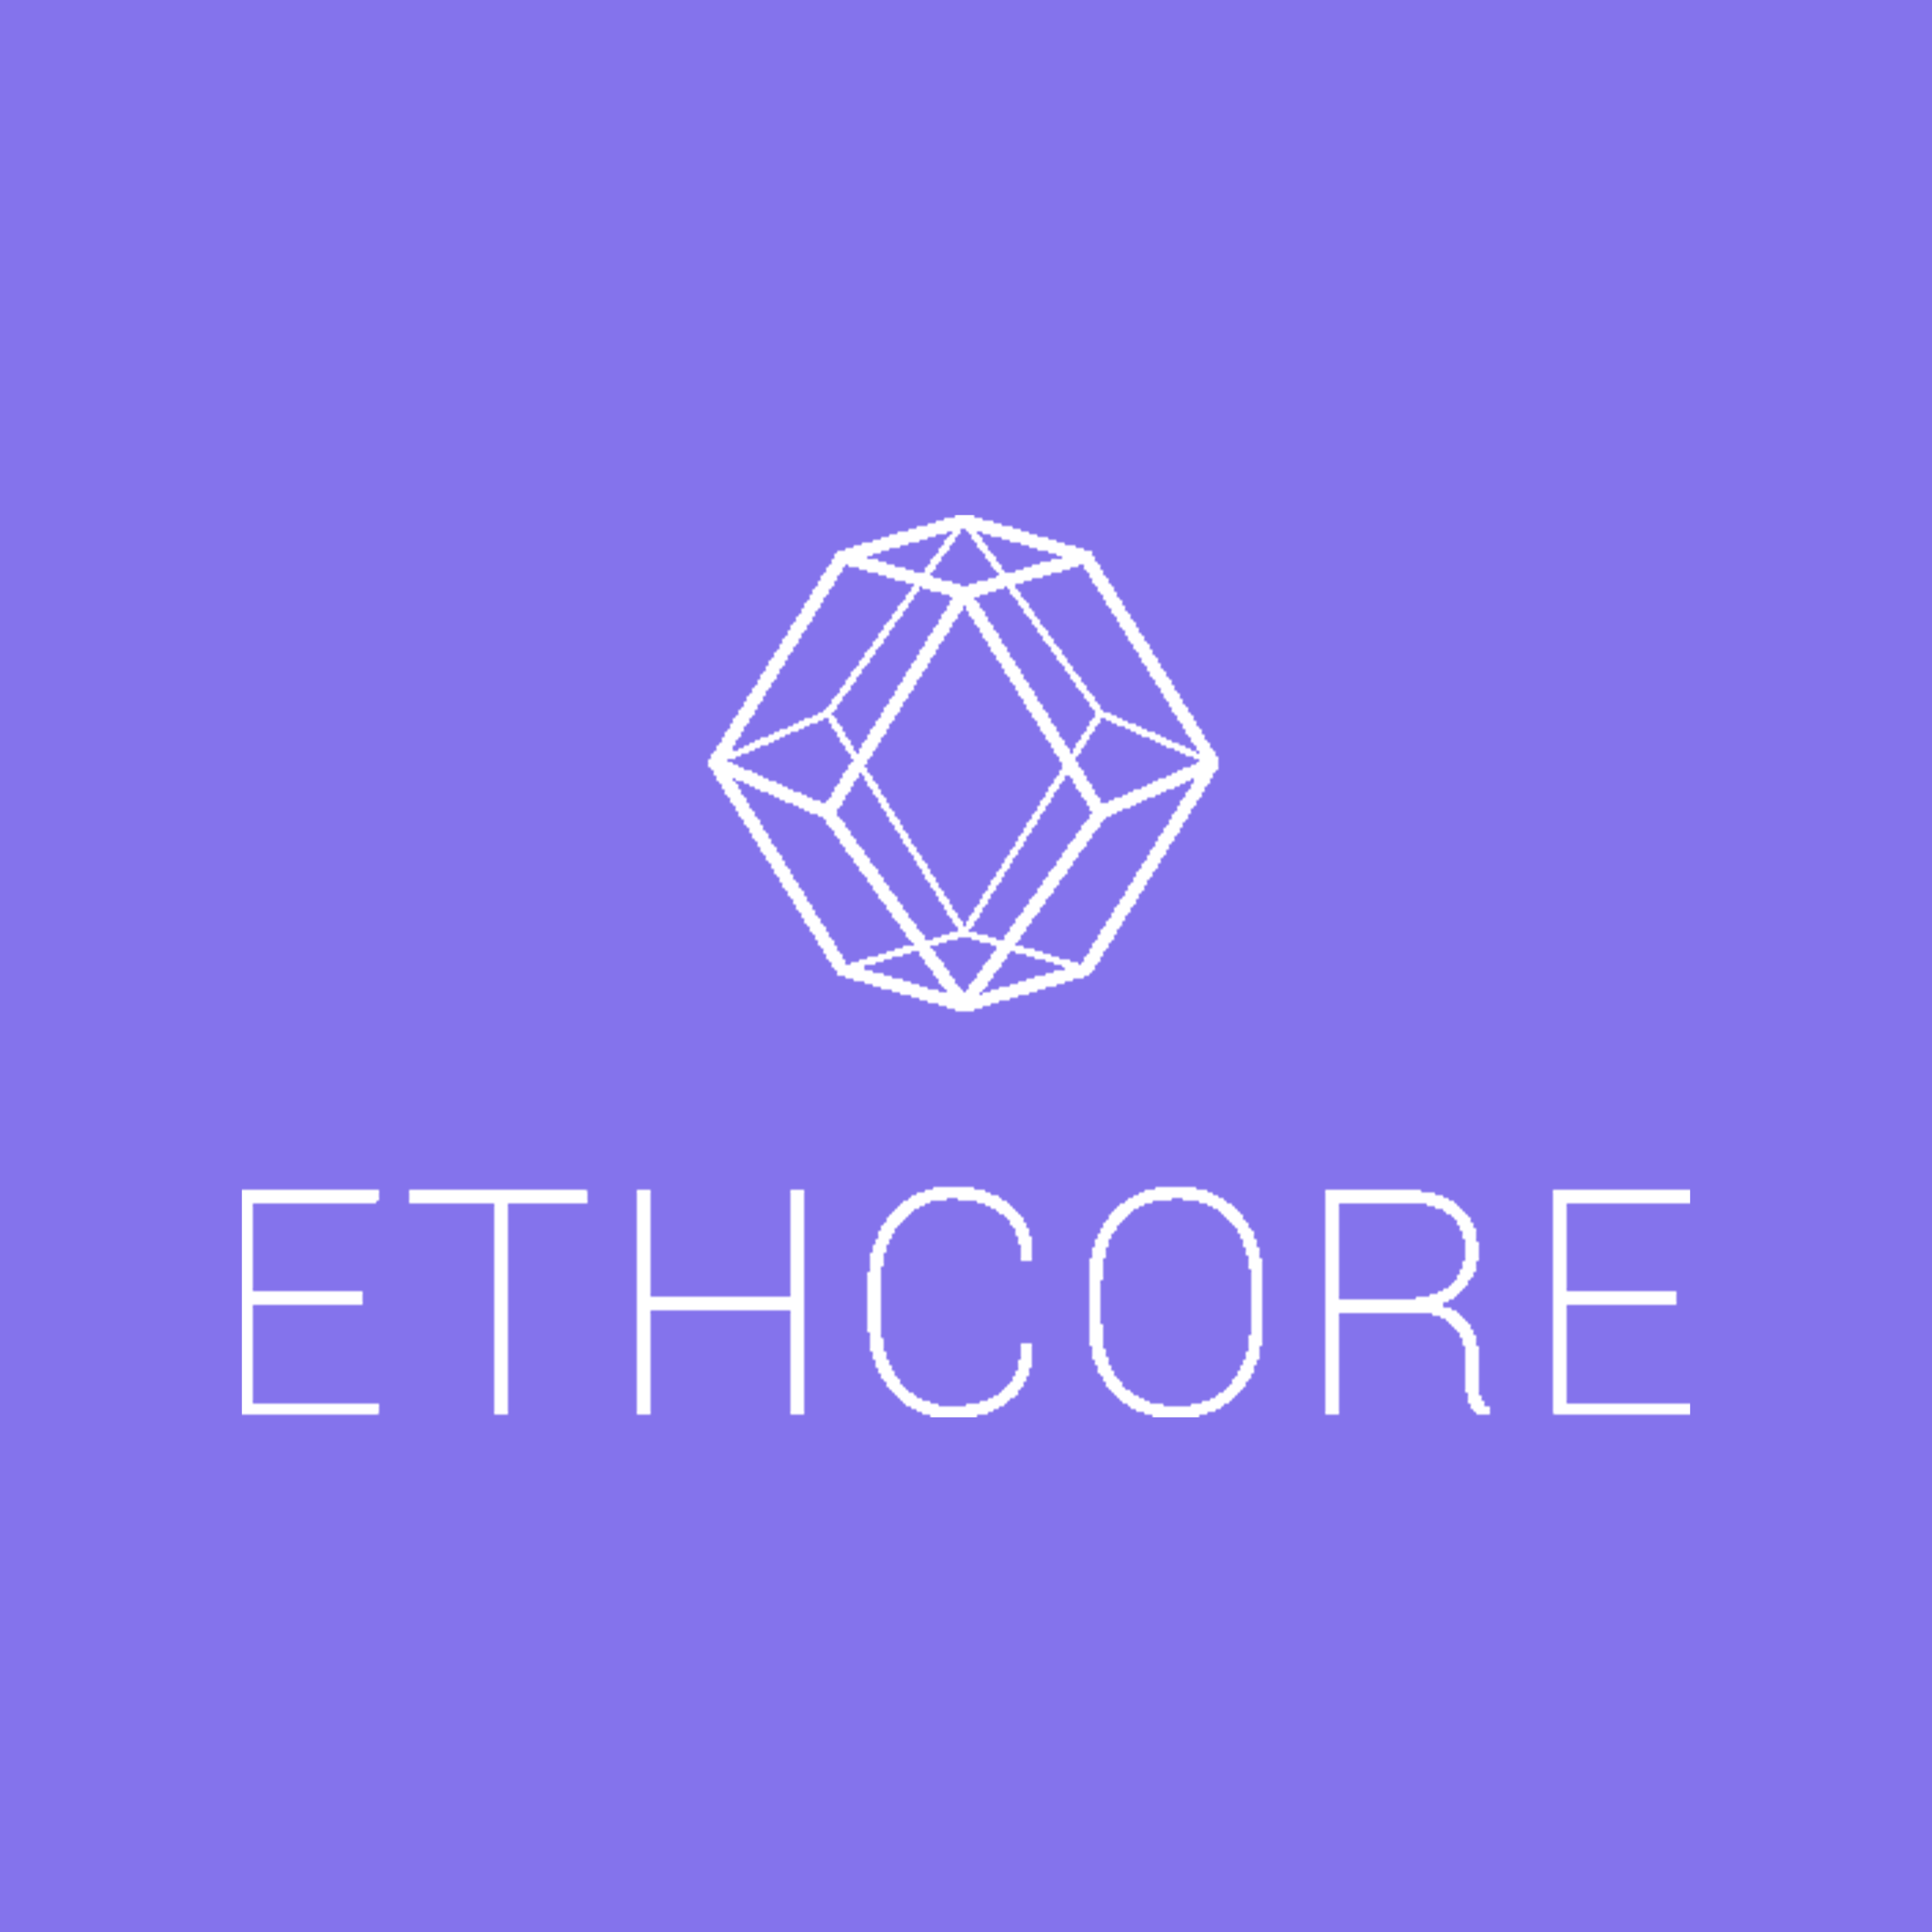 Ethcore.png